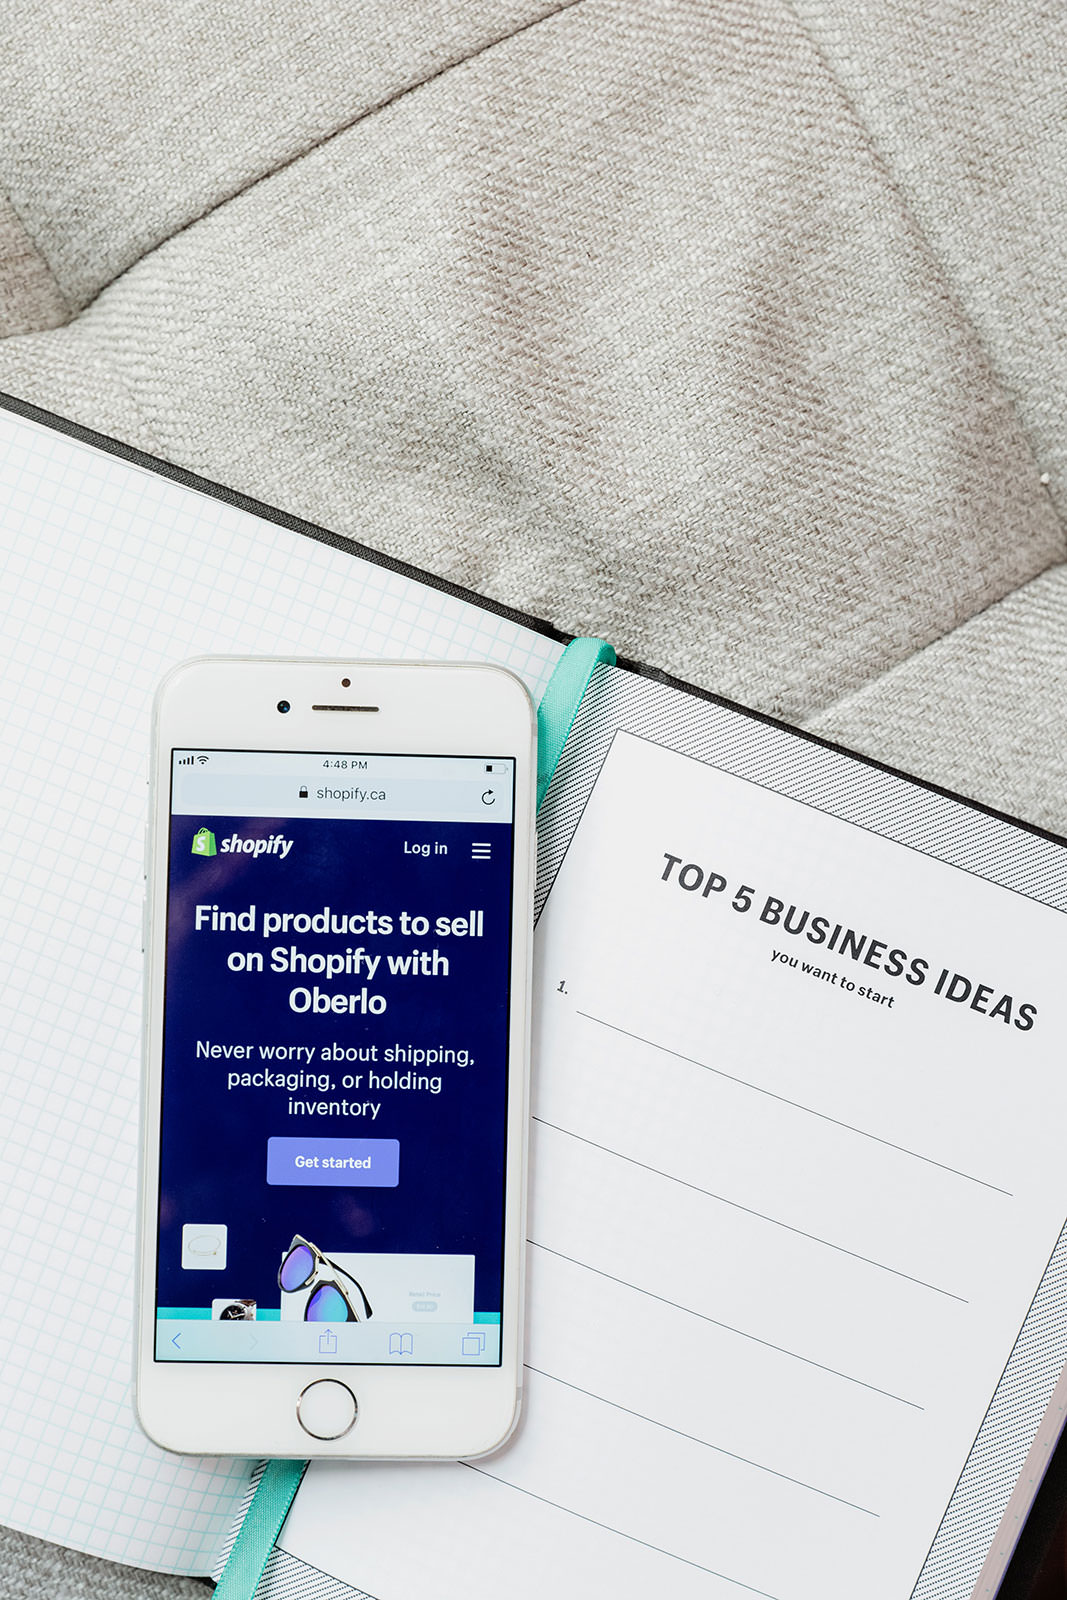 shopify business ideas